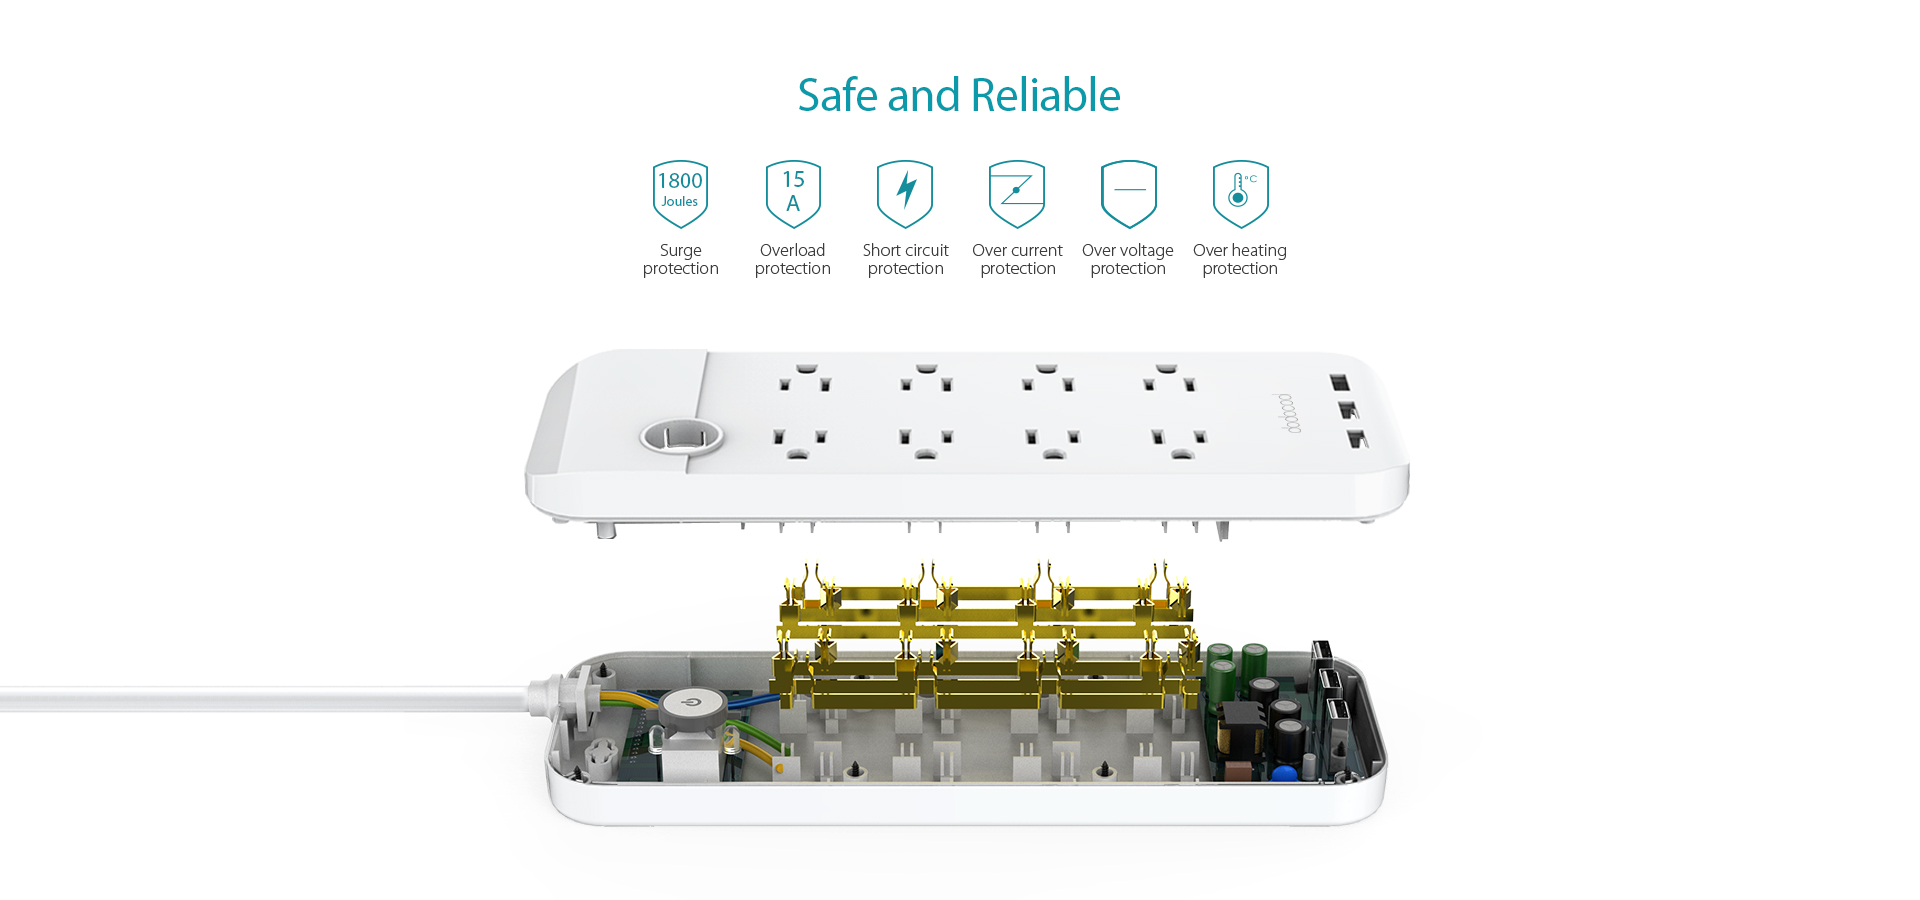 1875w Smart 8 Outlet With 155w 3 Port Usb Charger Circuit Diagram Of Over Voltage Protector Dodocool Surge Power Strip Turns One Prong Into Eight Protected Ac Outlets And Three